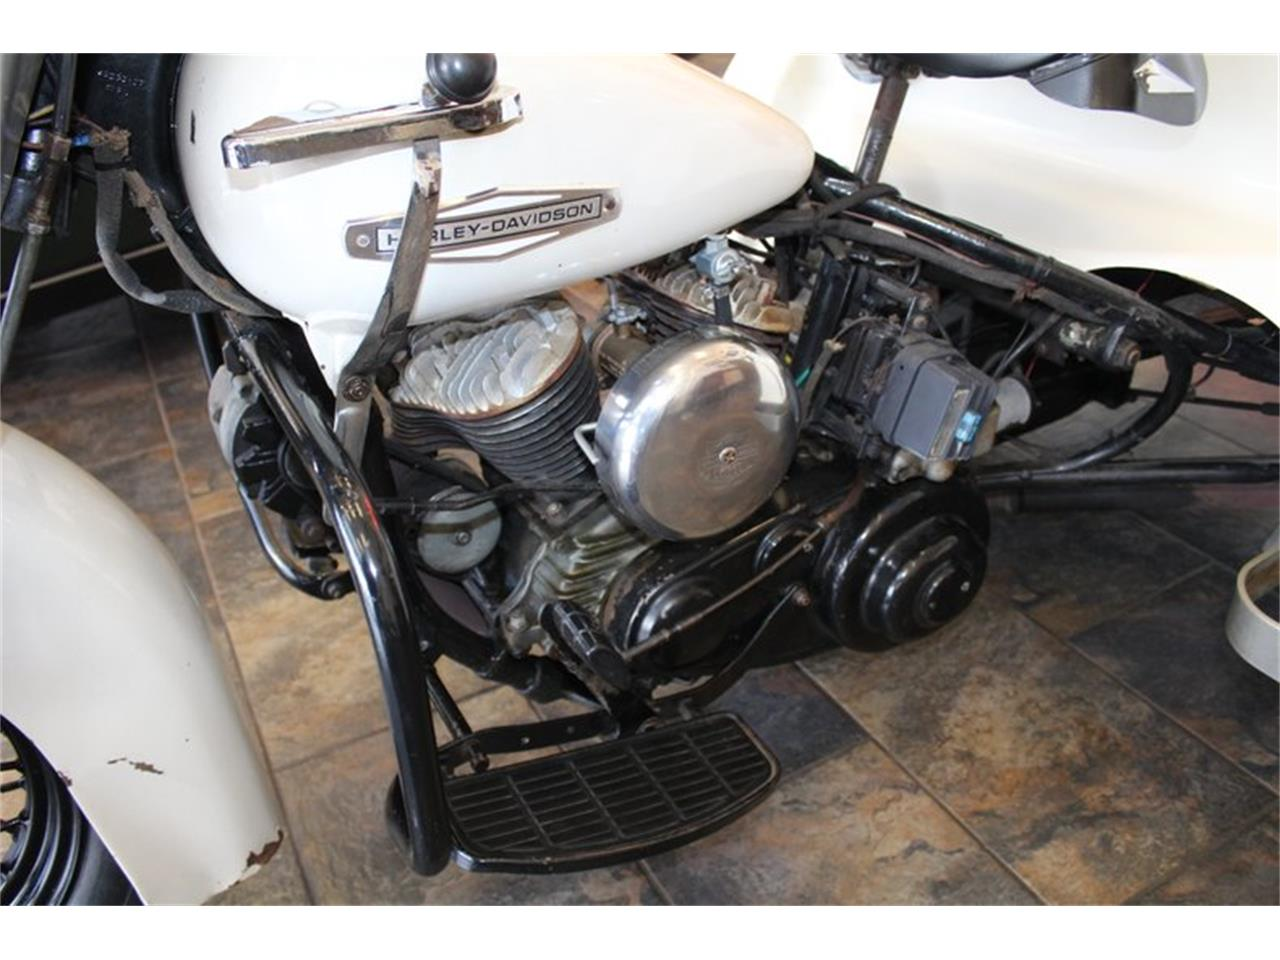 Large Picture of '67 Motorcycle located in Florida Offered by Classic Cars of Sarasota - PKVZ